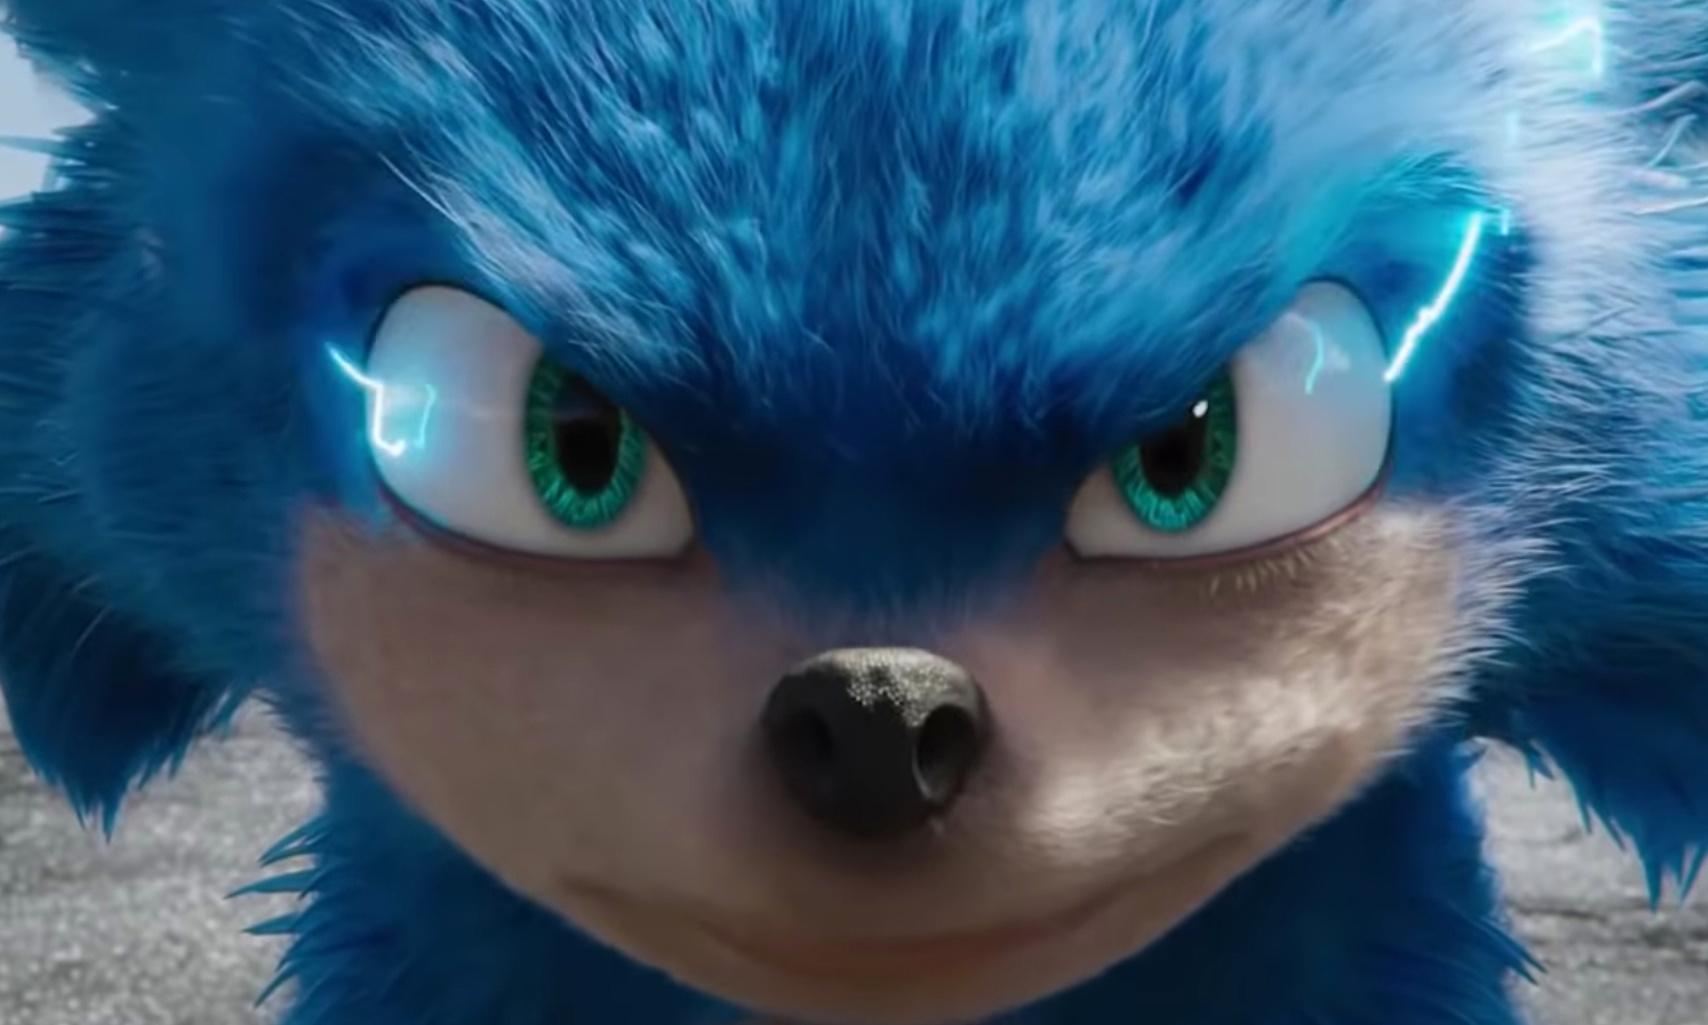 New trailer for Sonic the Hedgehog released after disastrous first version